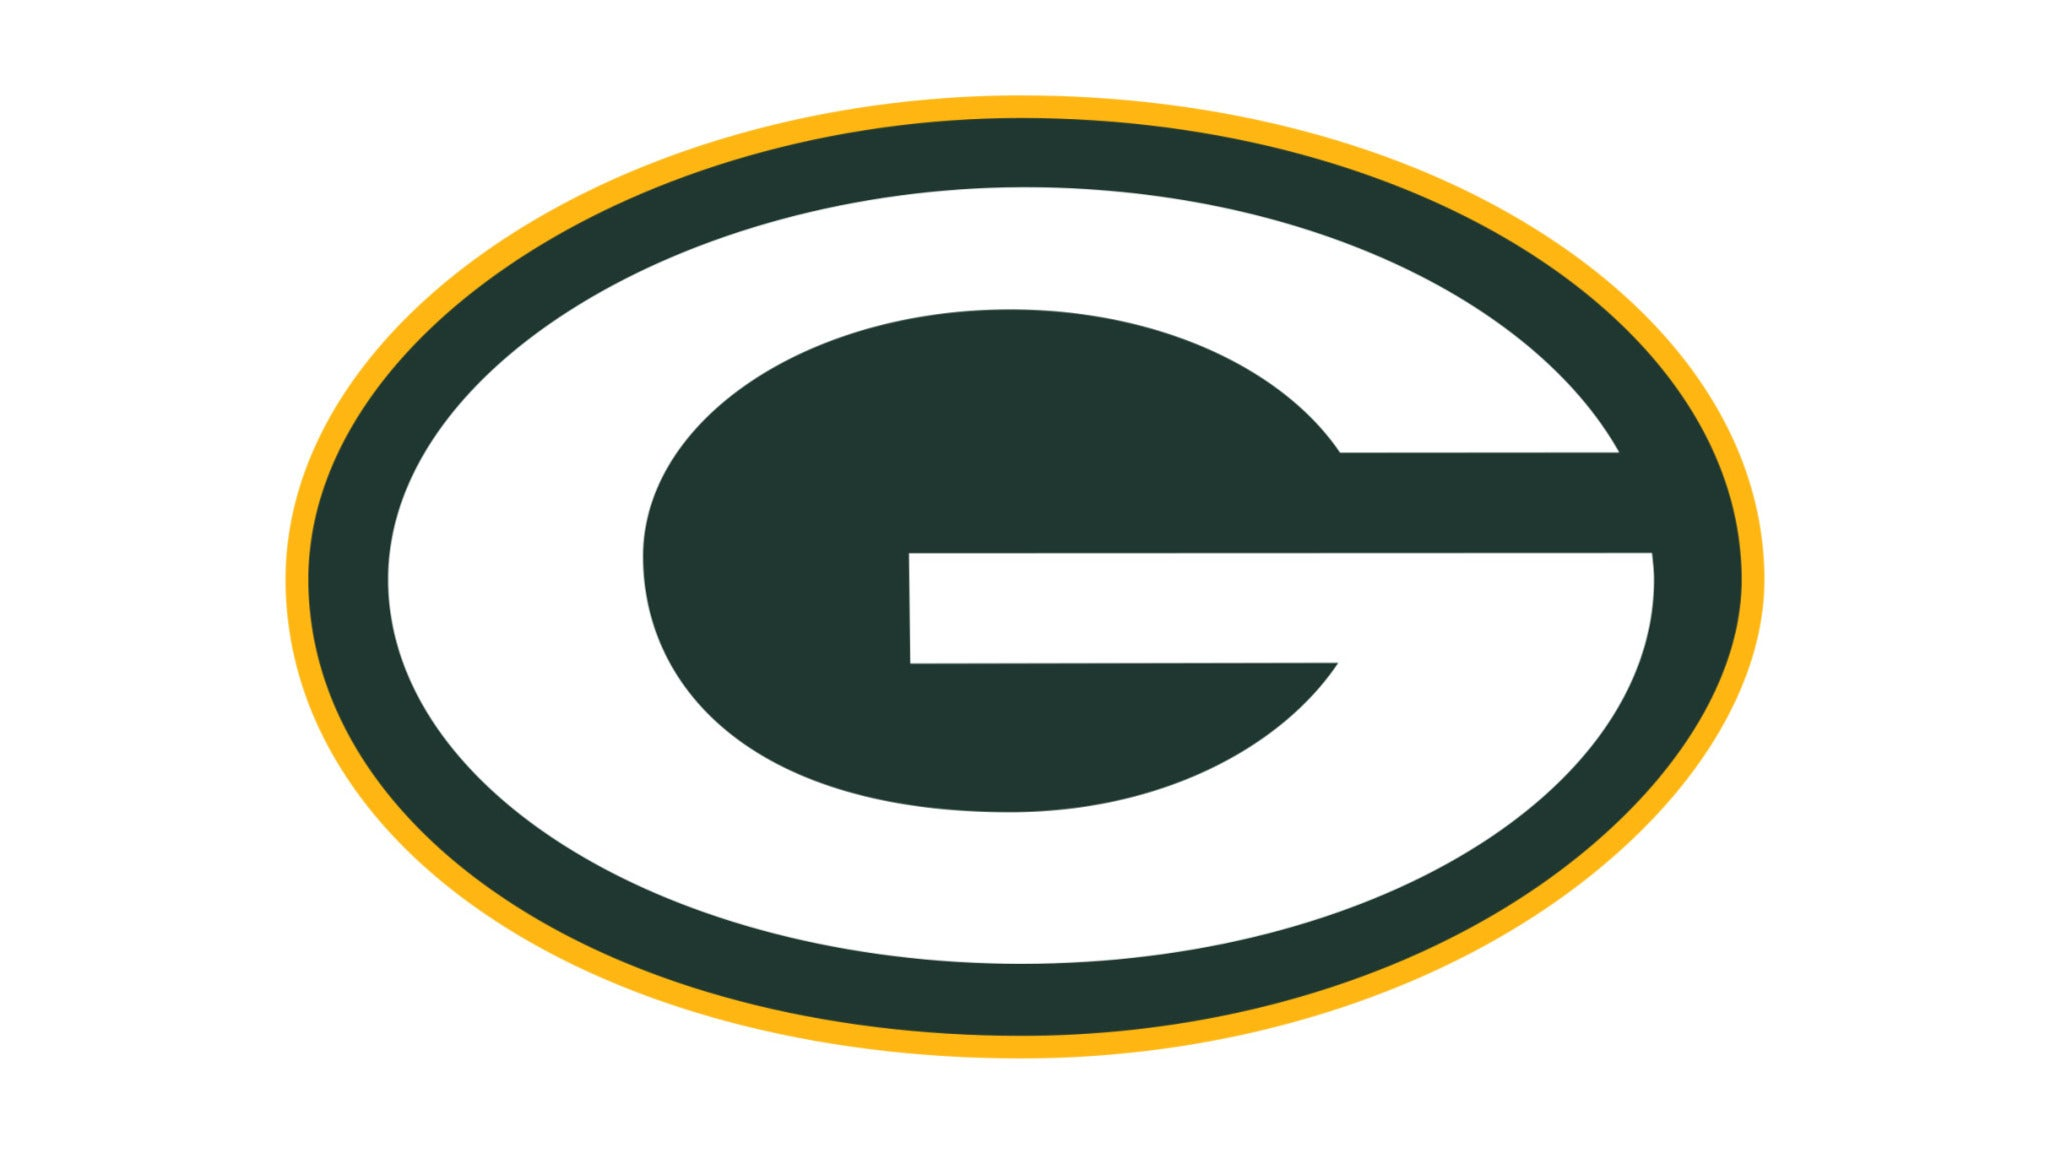 Green Bay Packers vs. Chicago Bears at Lambeau Field